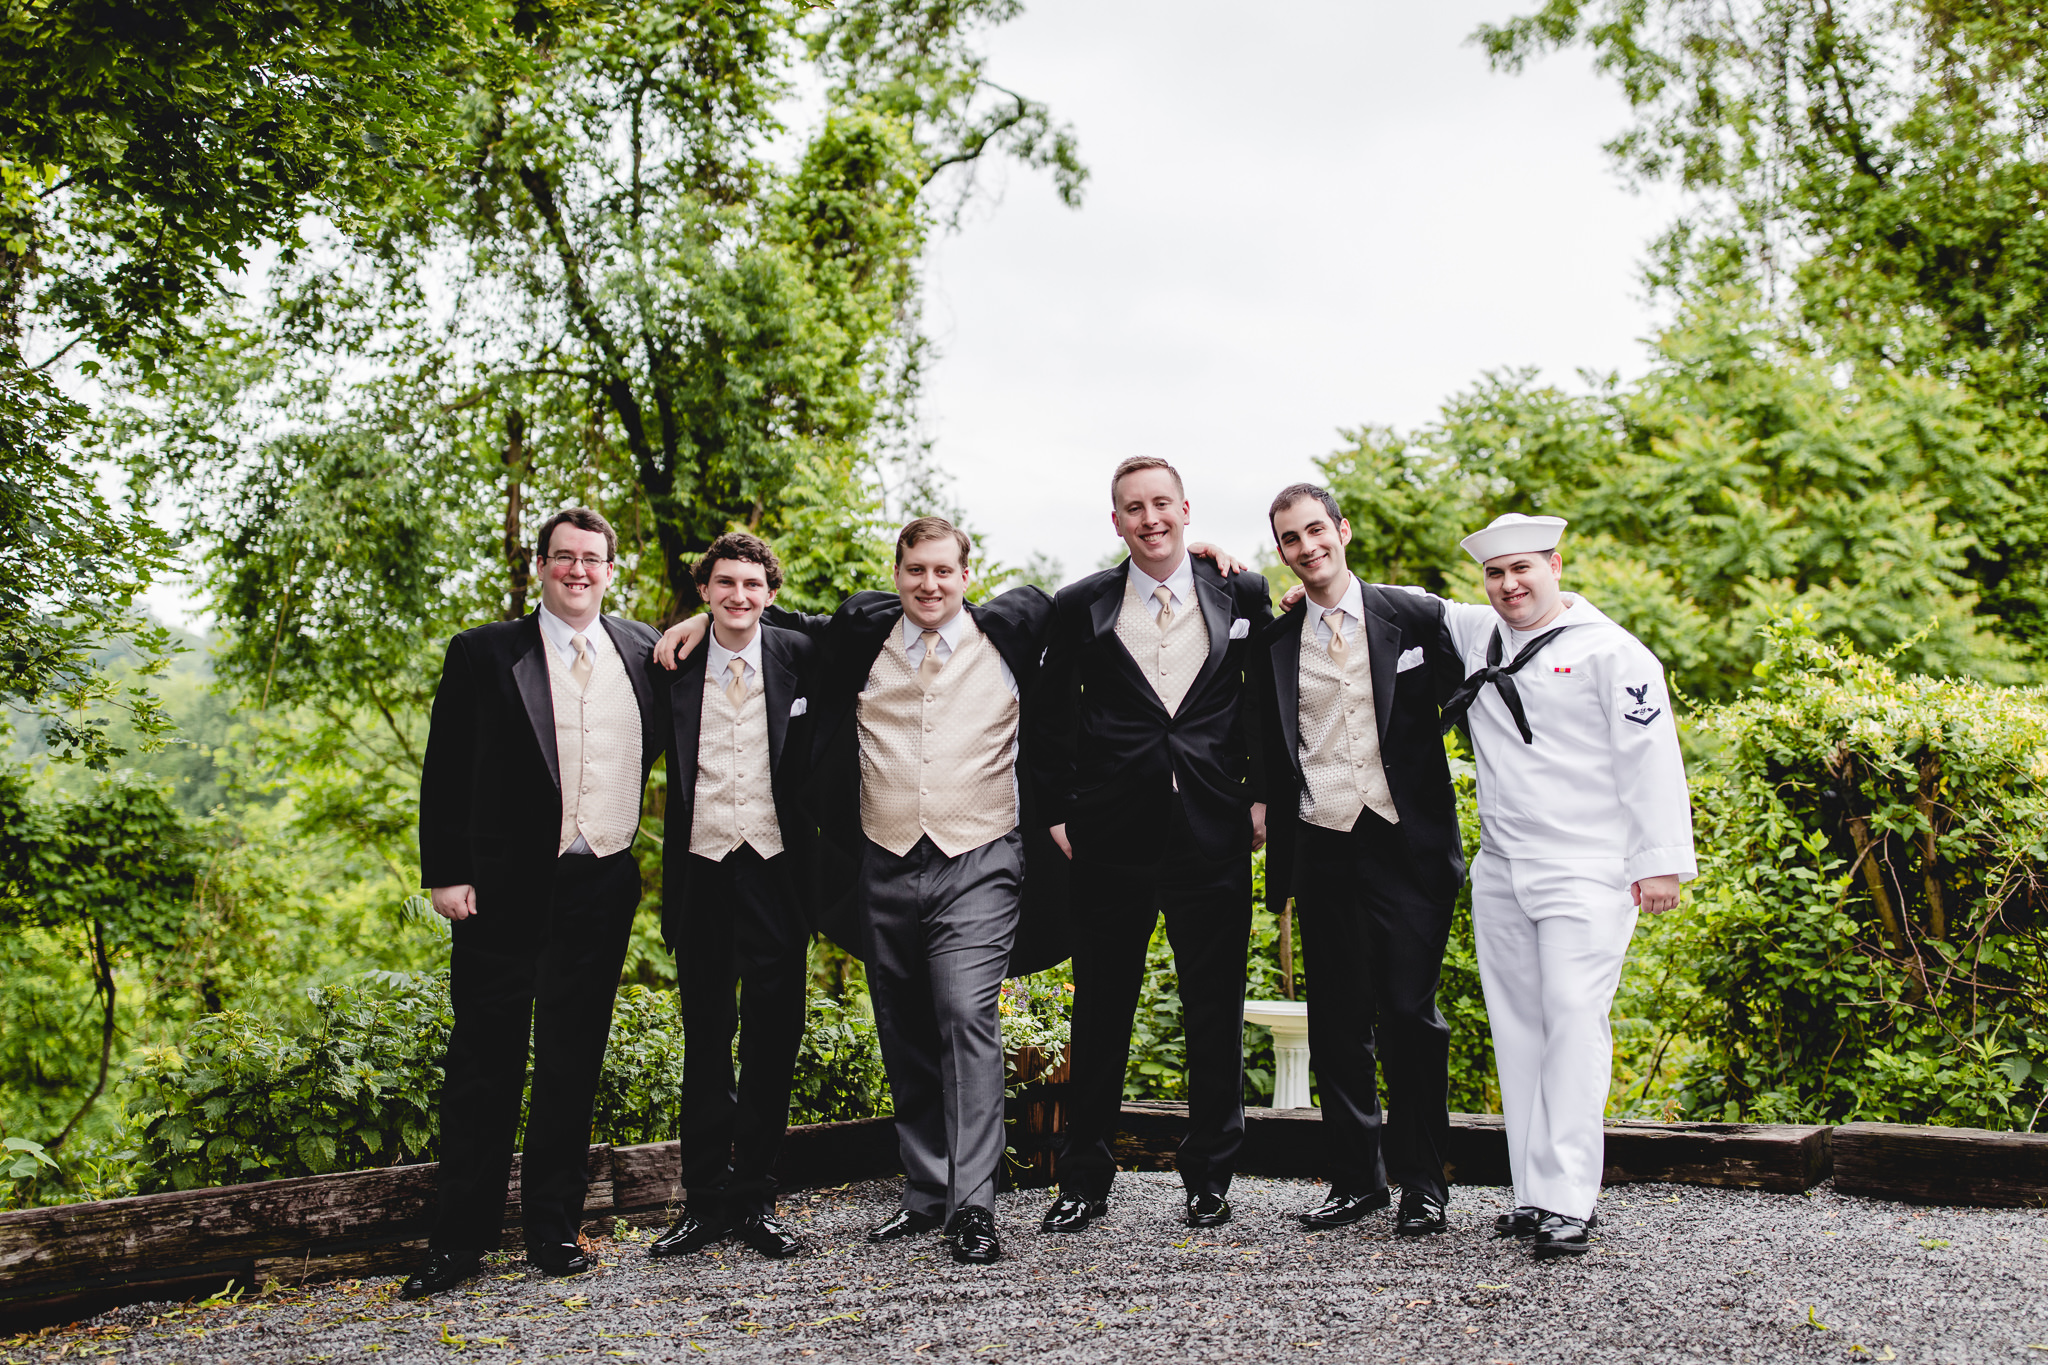 Groomsmen posing in their tuxes from Men's Wearhouse